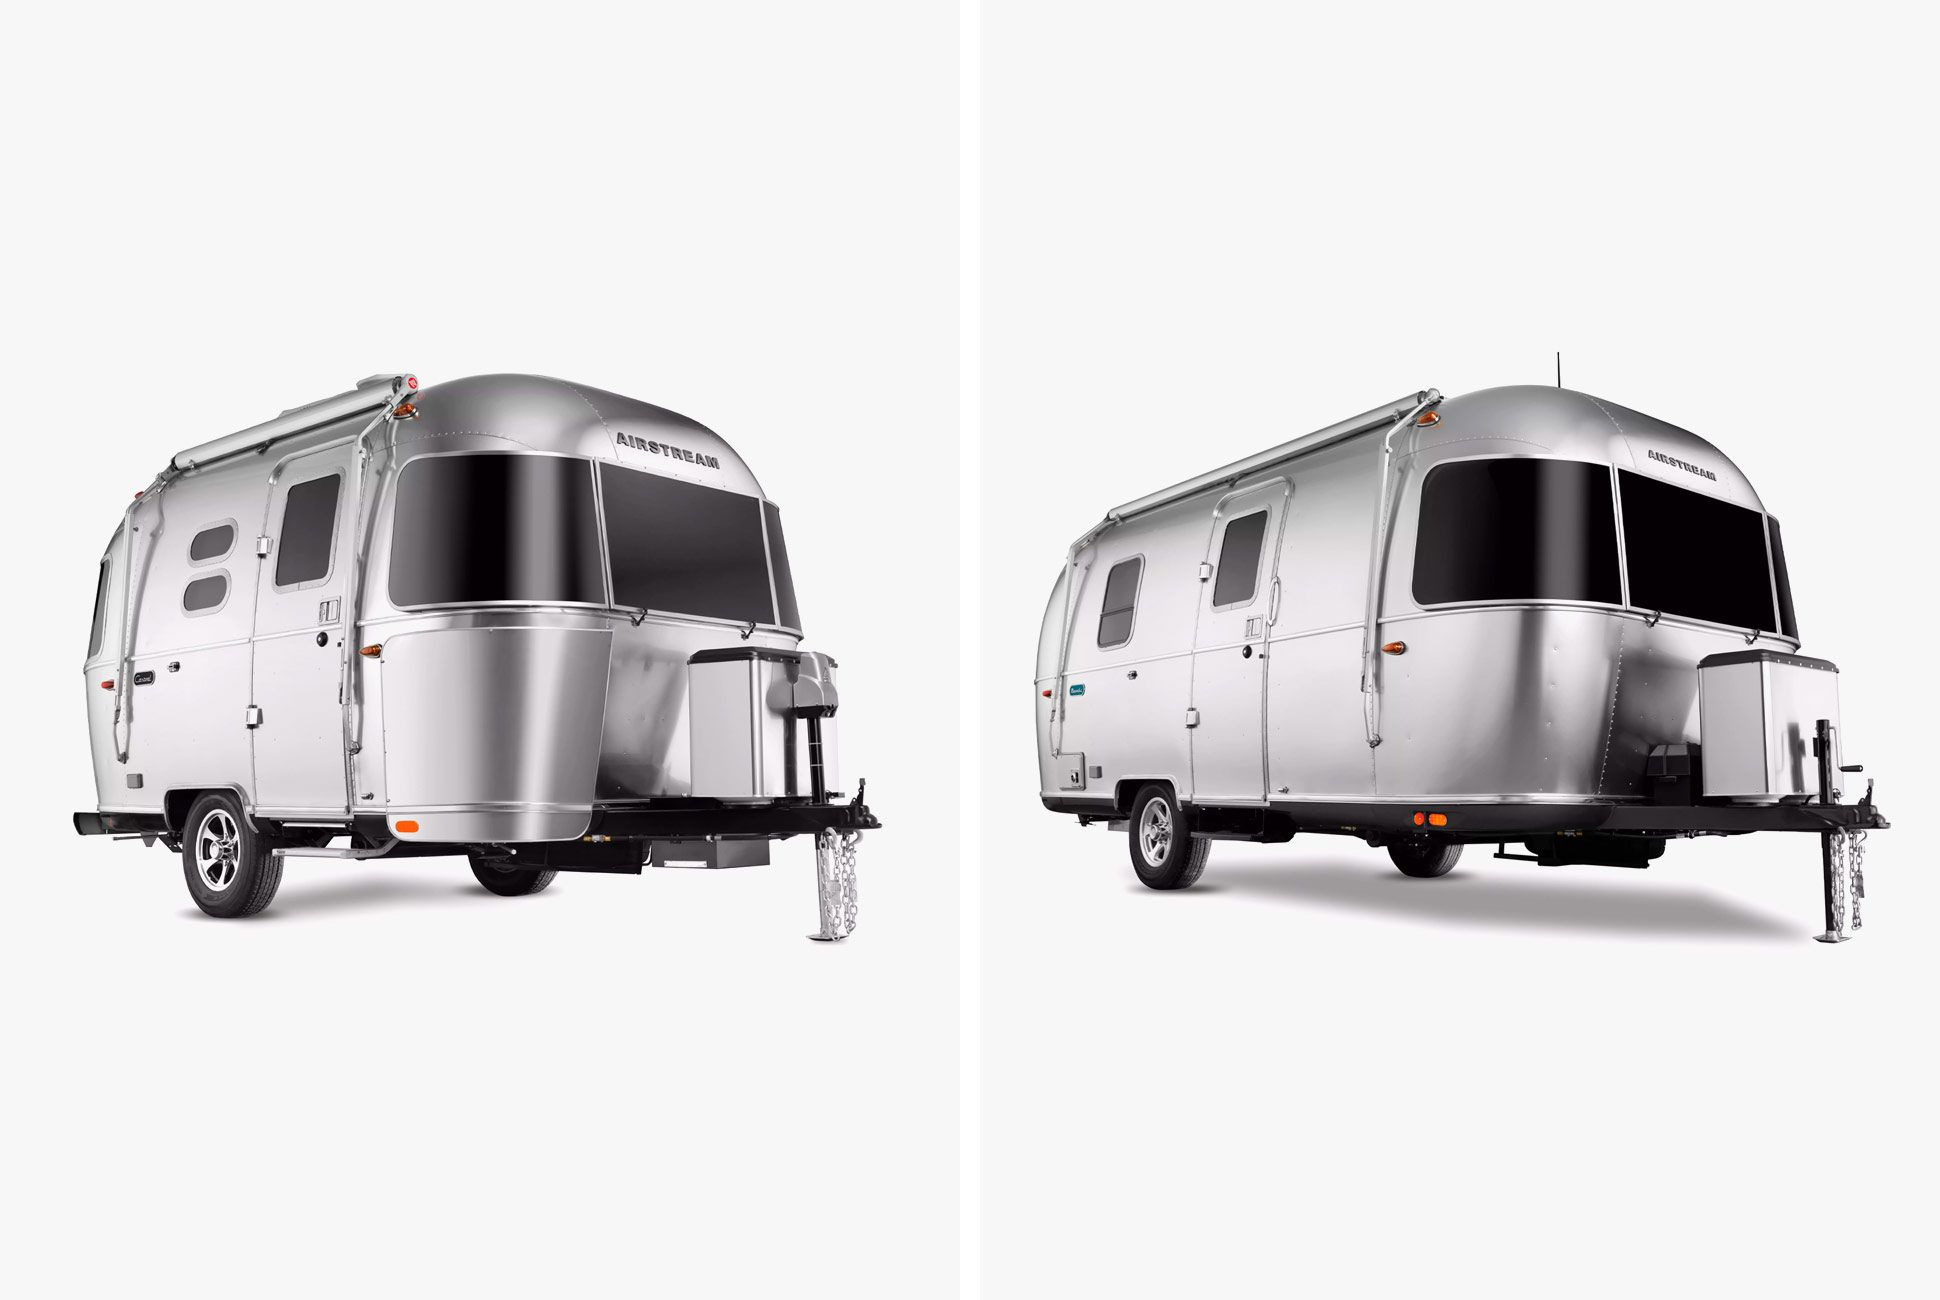 Airstream-Bambi-and-Caravel-Travel-Trailers-gear-patrol-slide-1